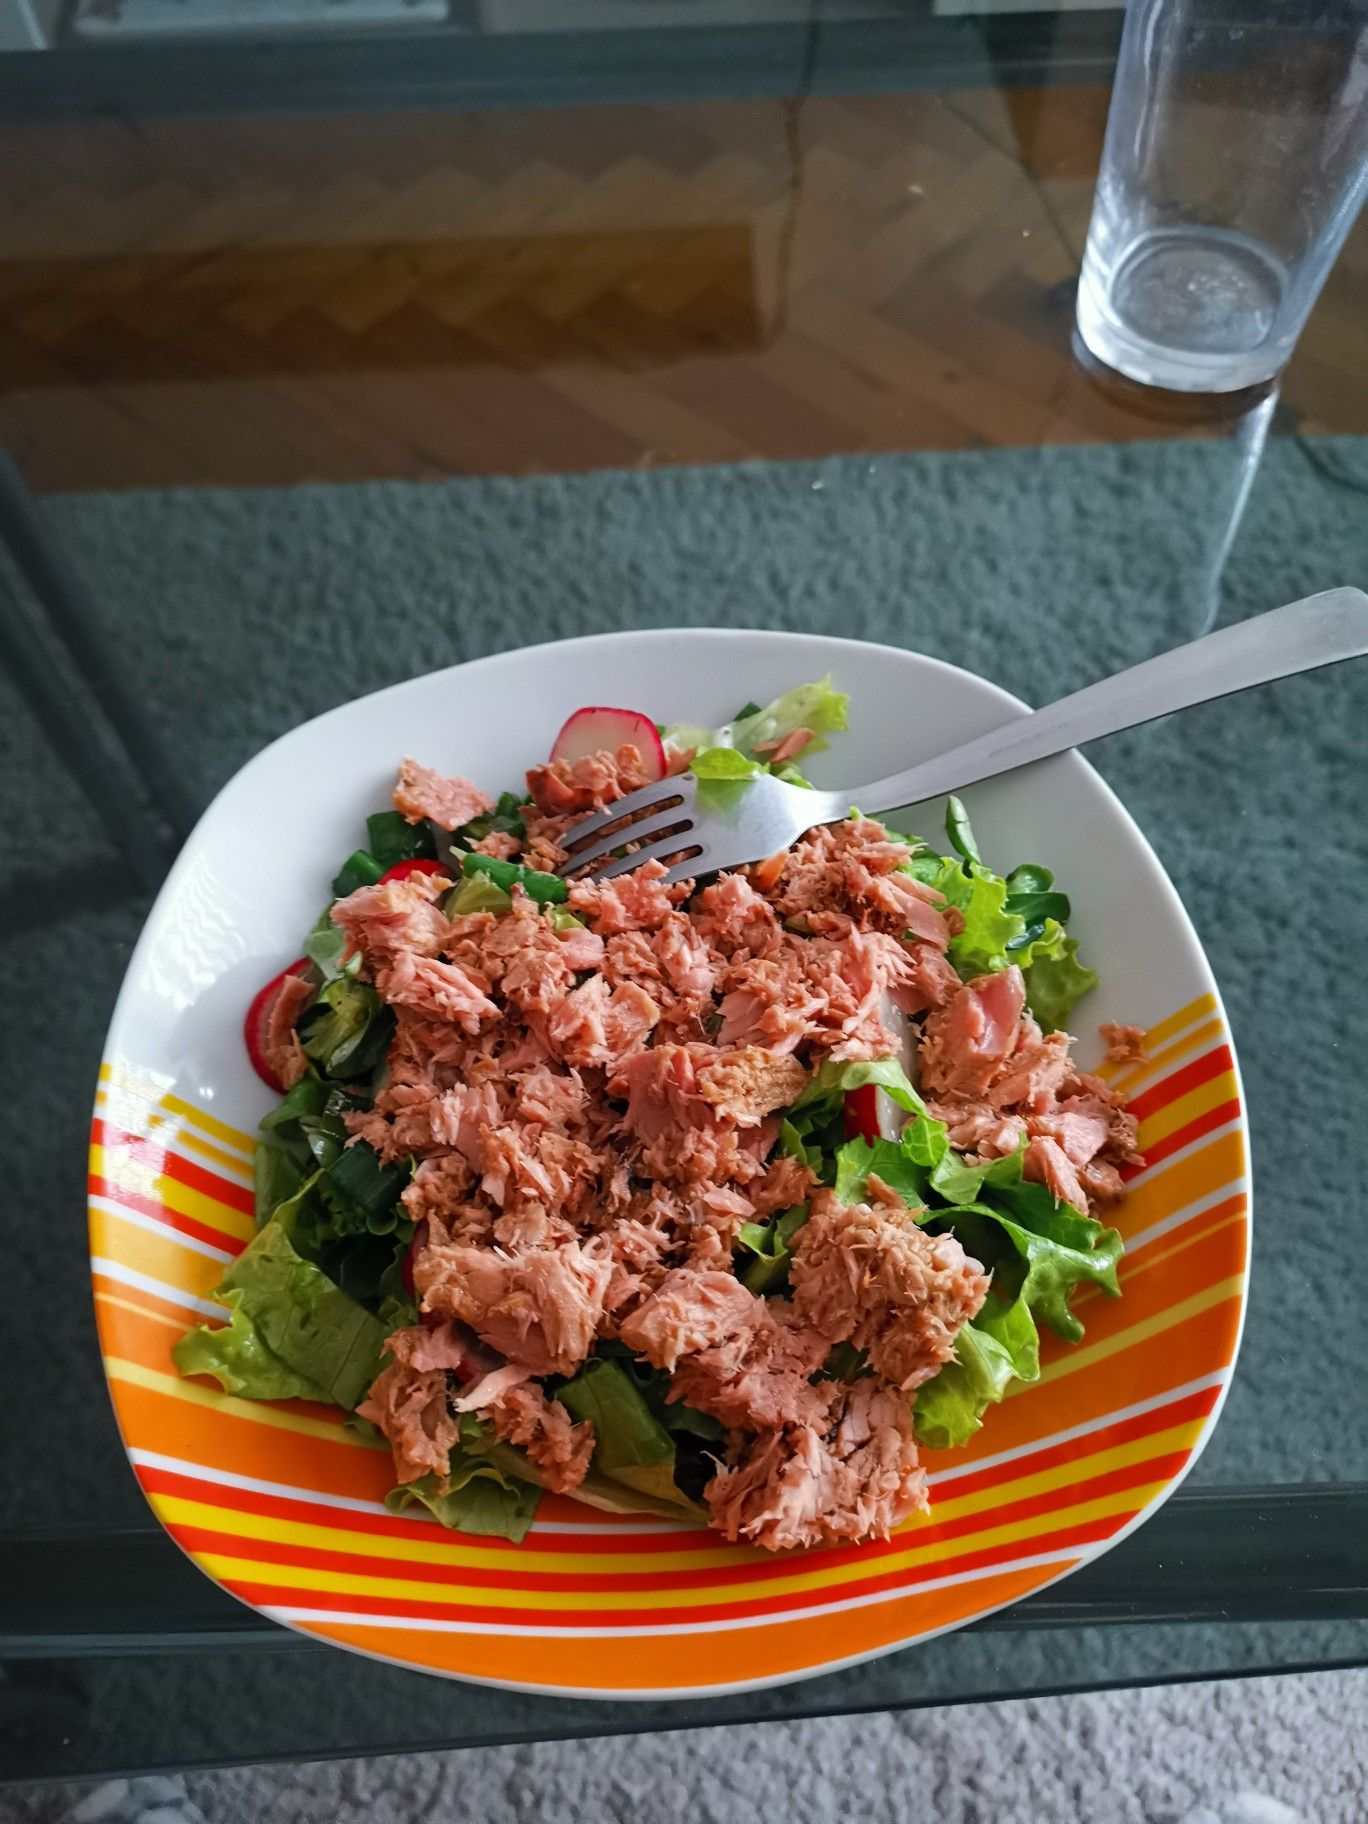 Pin on Aip diet recipes